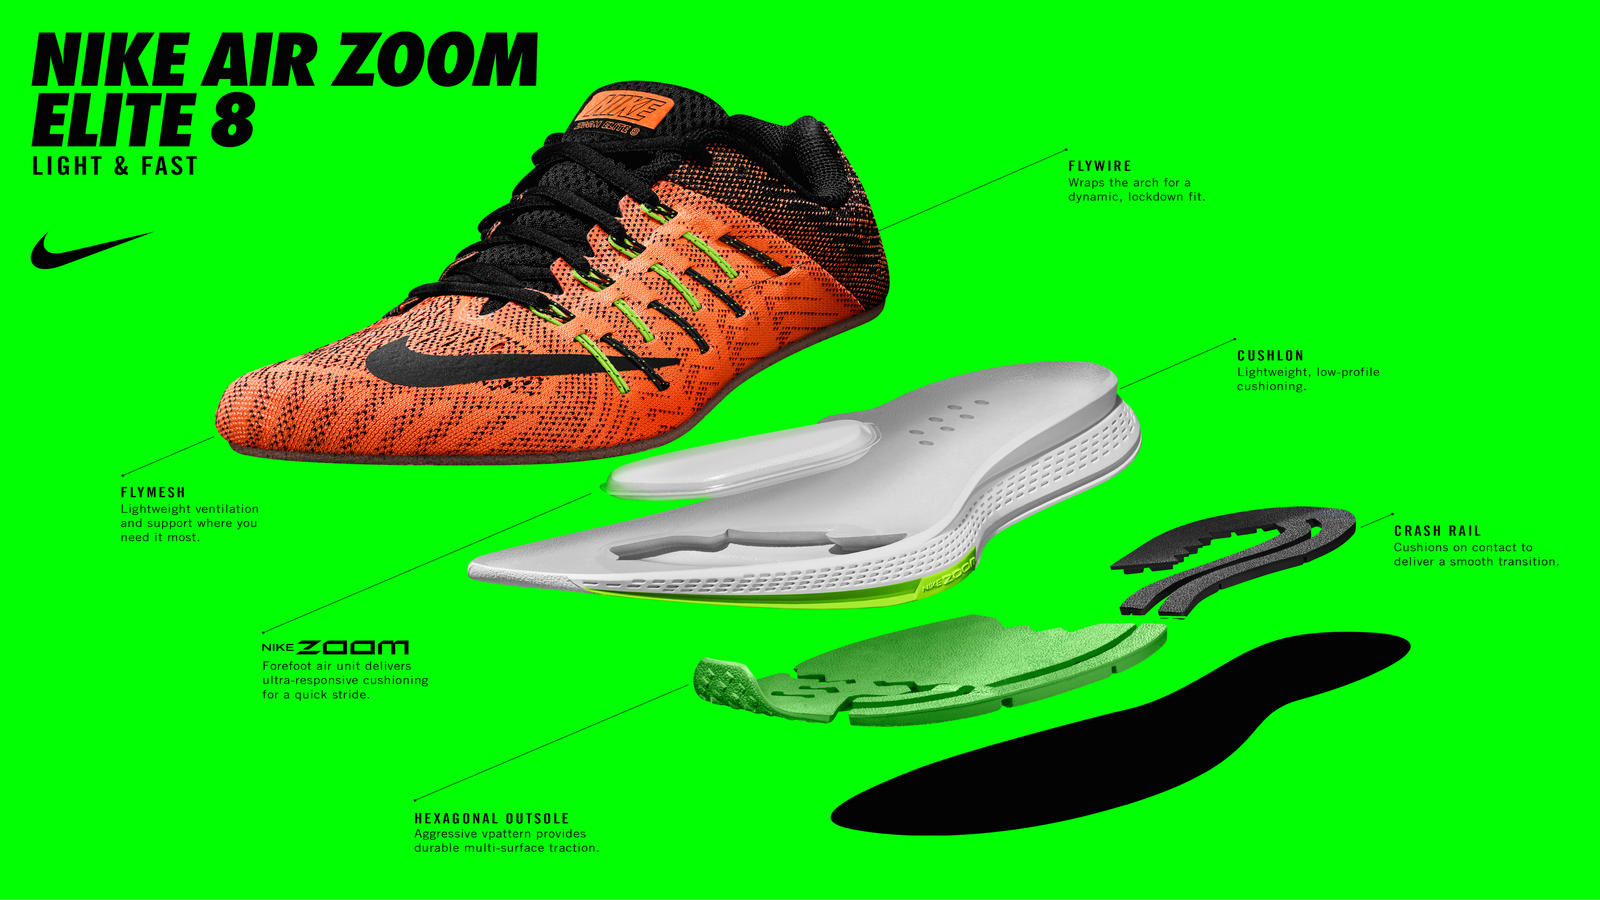 Nike Air Zoom Elite 8: Low, Sleek, Fast and Light Nike News